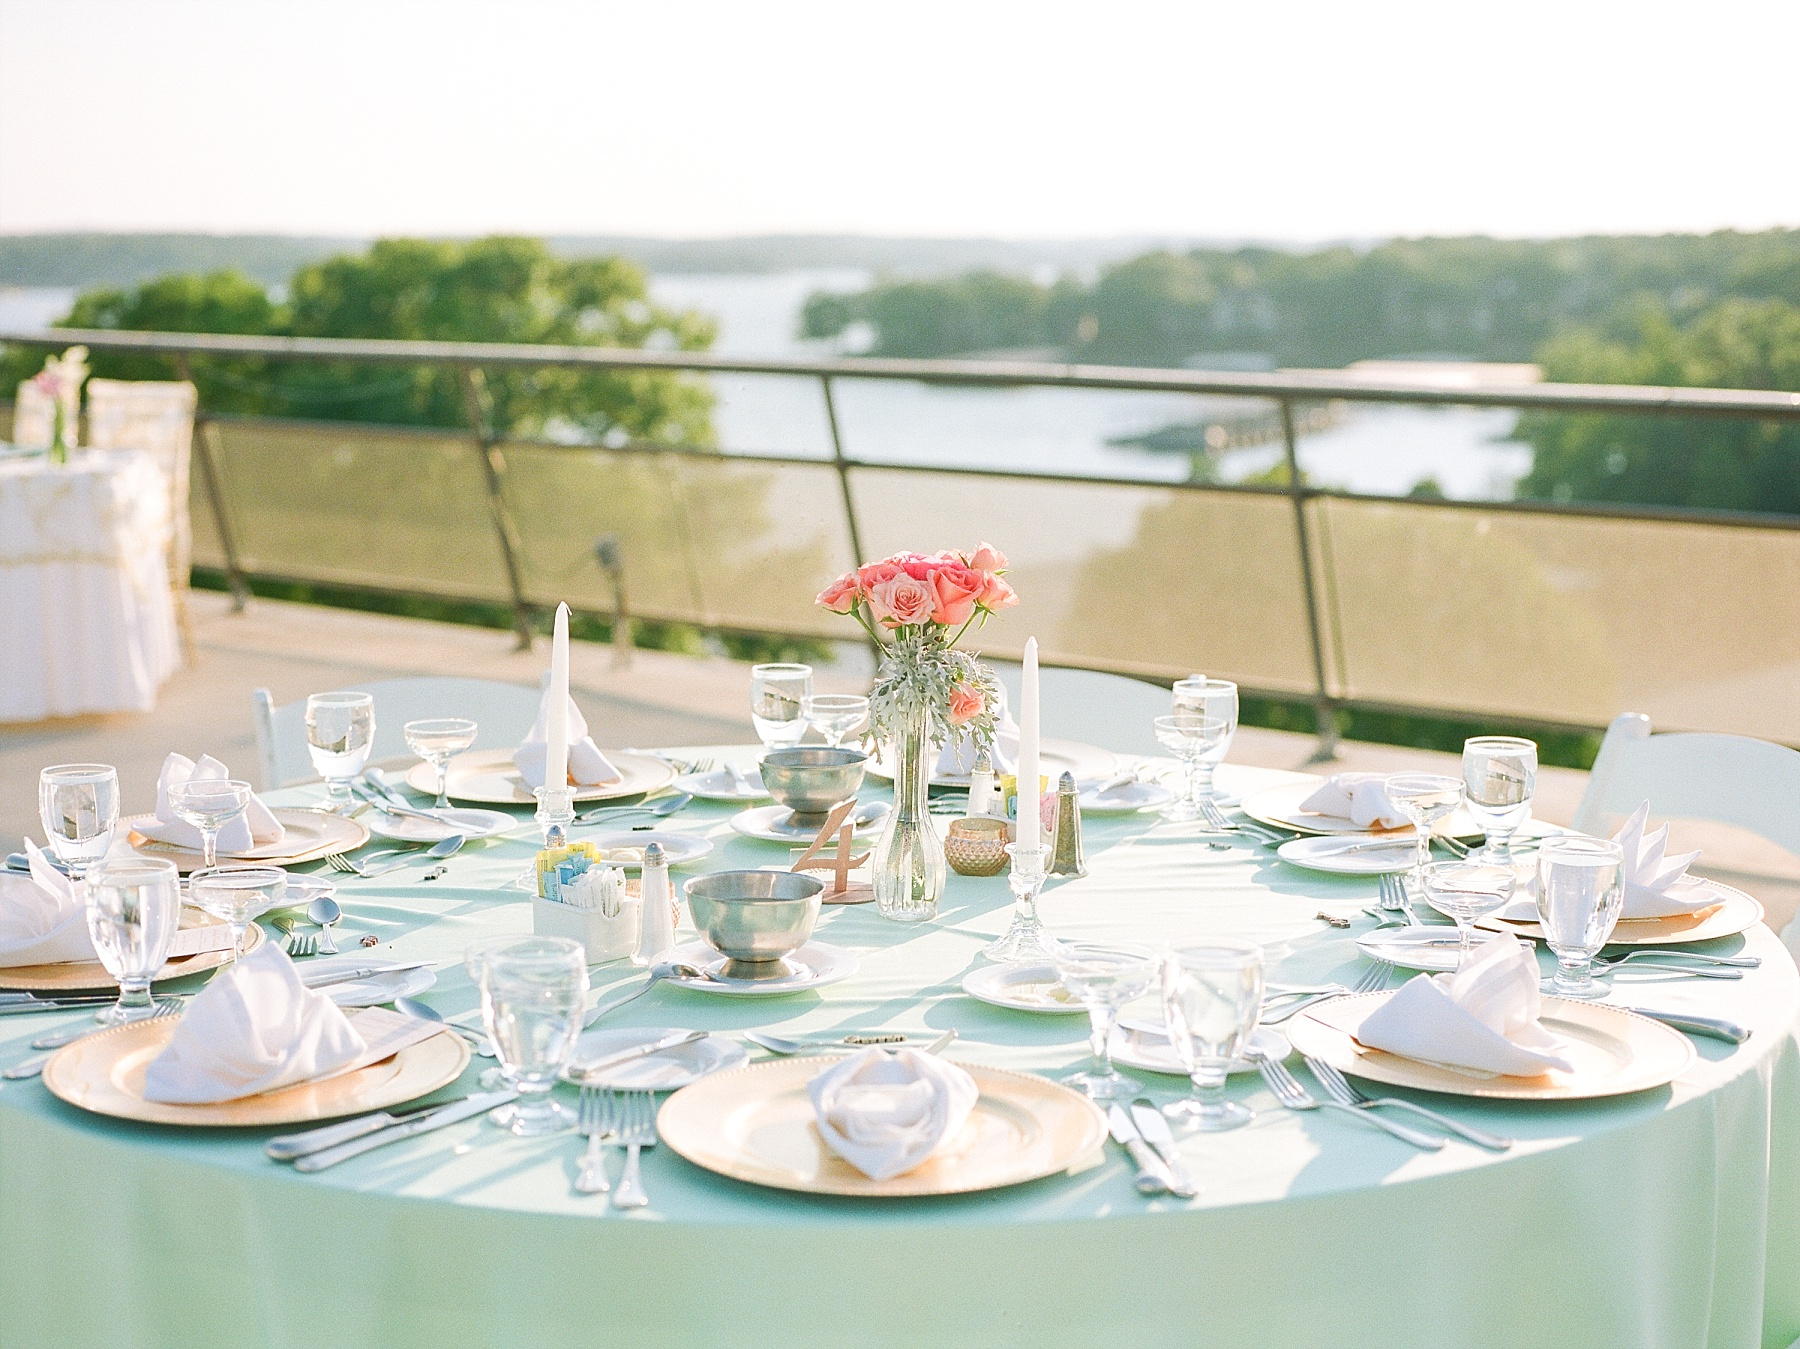 Beachside Sunset Wedding At Lodge Of Four Seasons At Lake Of The Ozarks By Kelsi Kliethermes Photography_0034.jpg